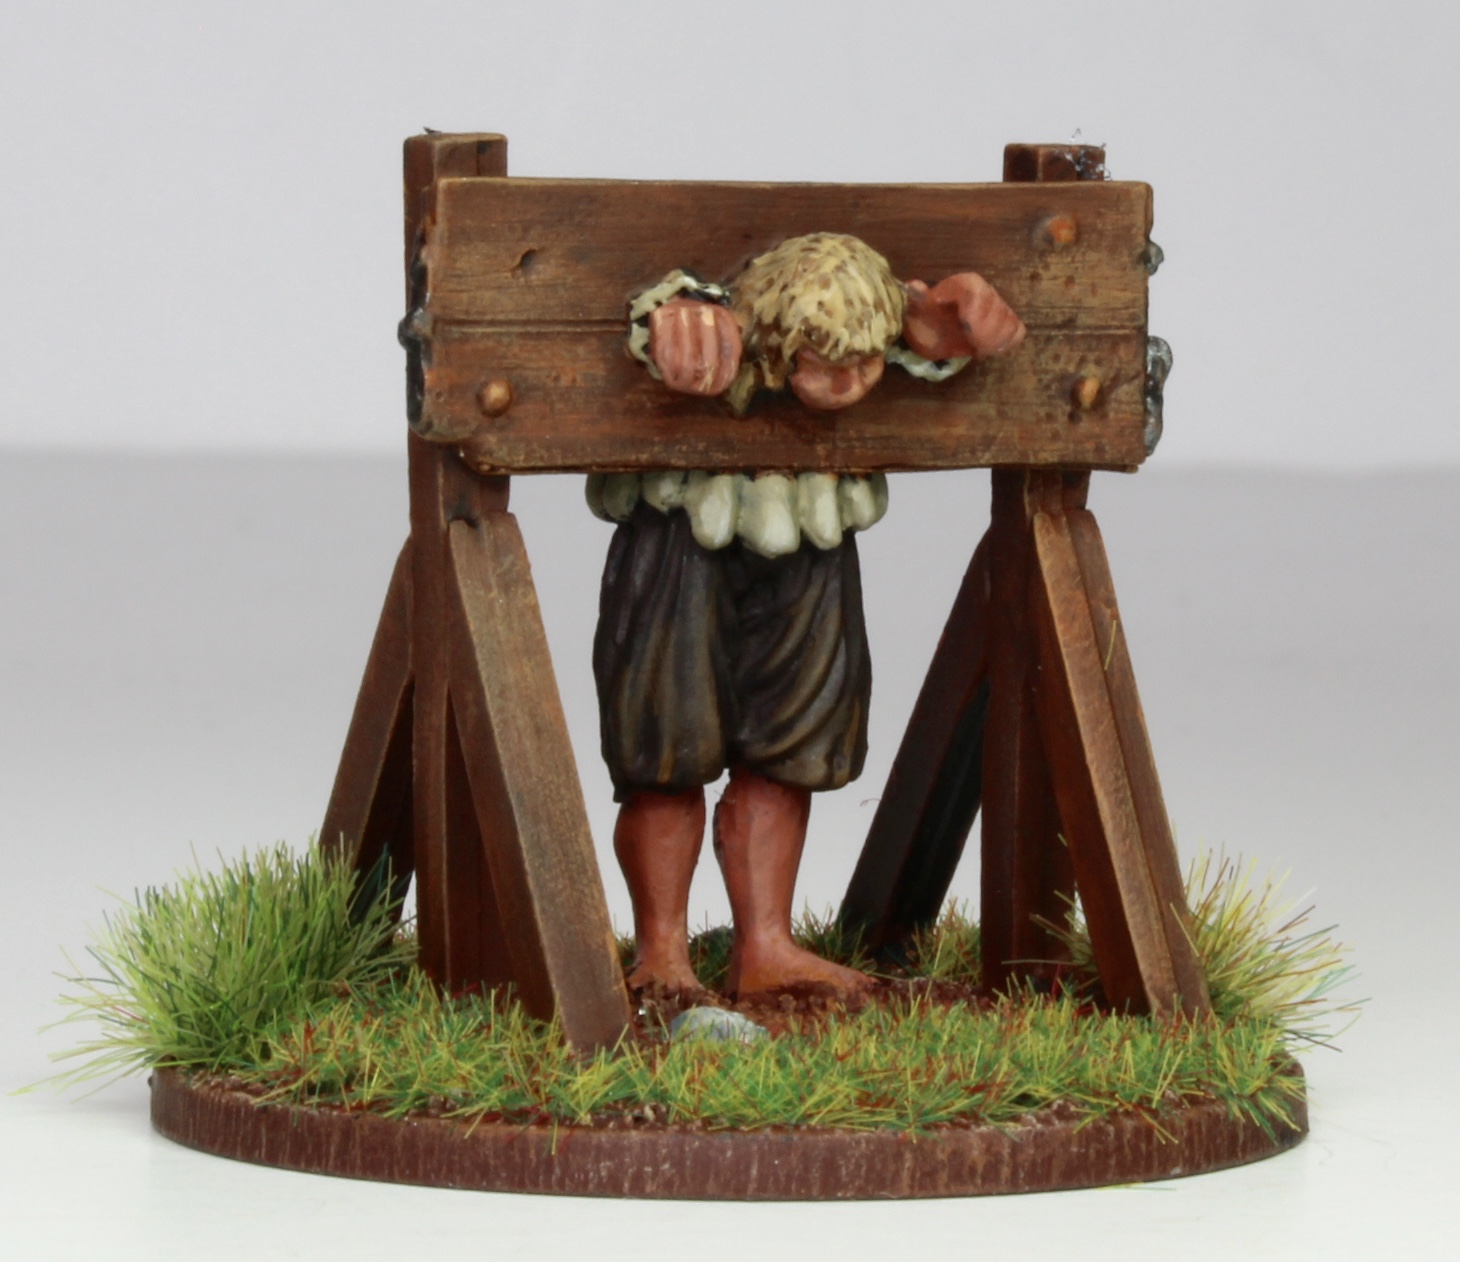 Pillory - definition of pillory by The Free Dictionary